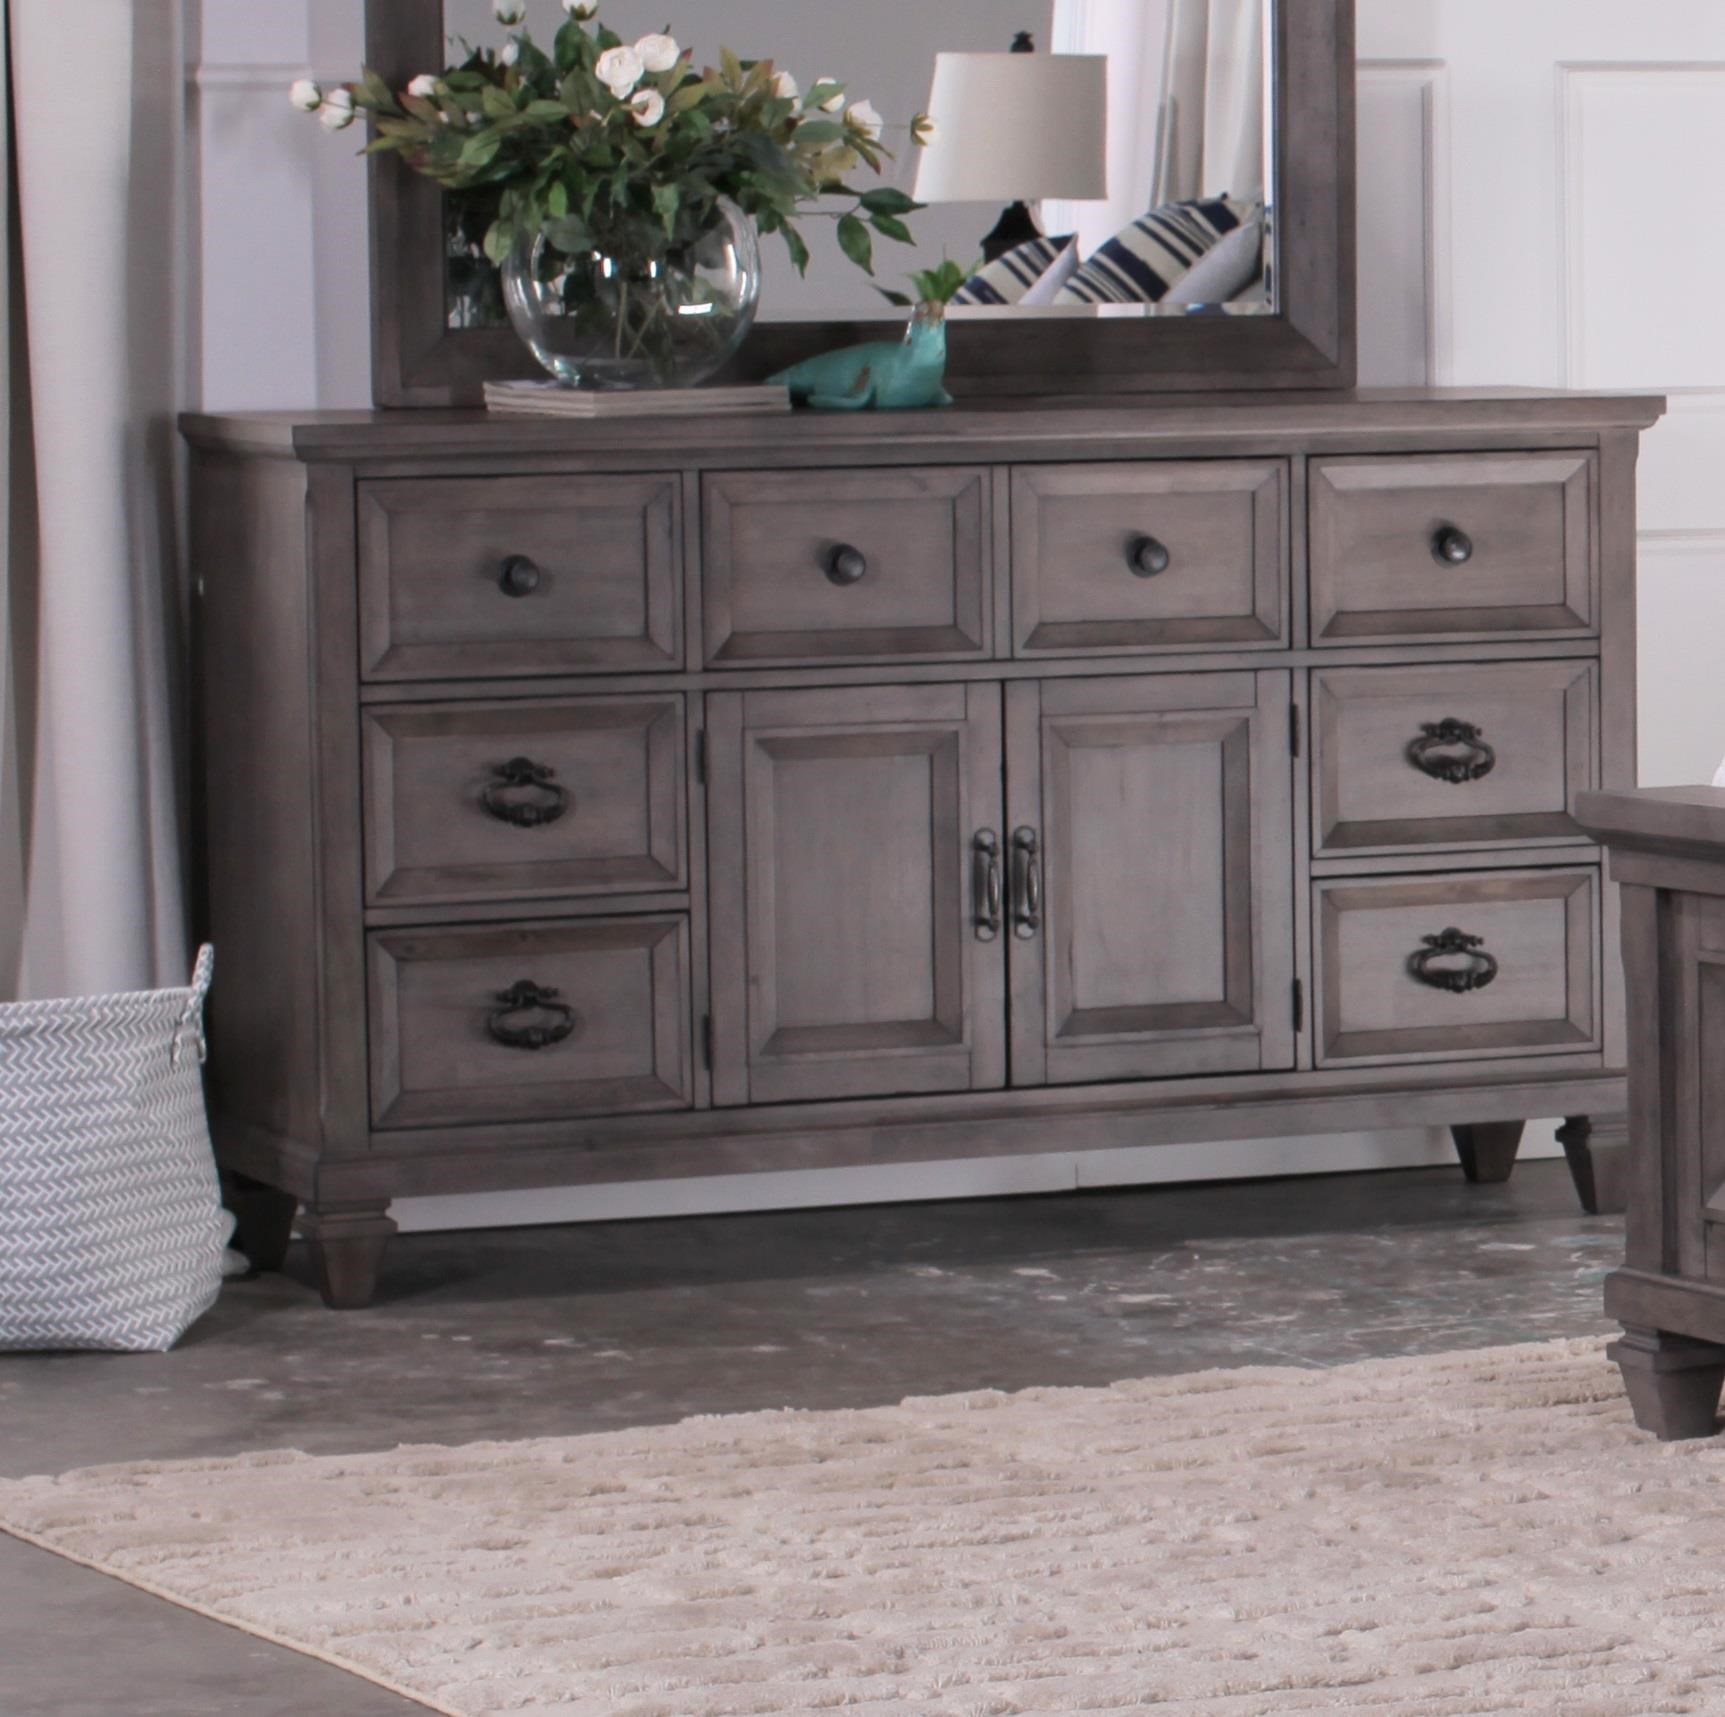 Charmant New Classic Gibraltar Dresser With Doors